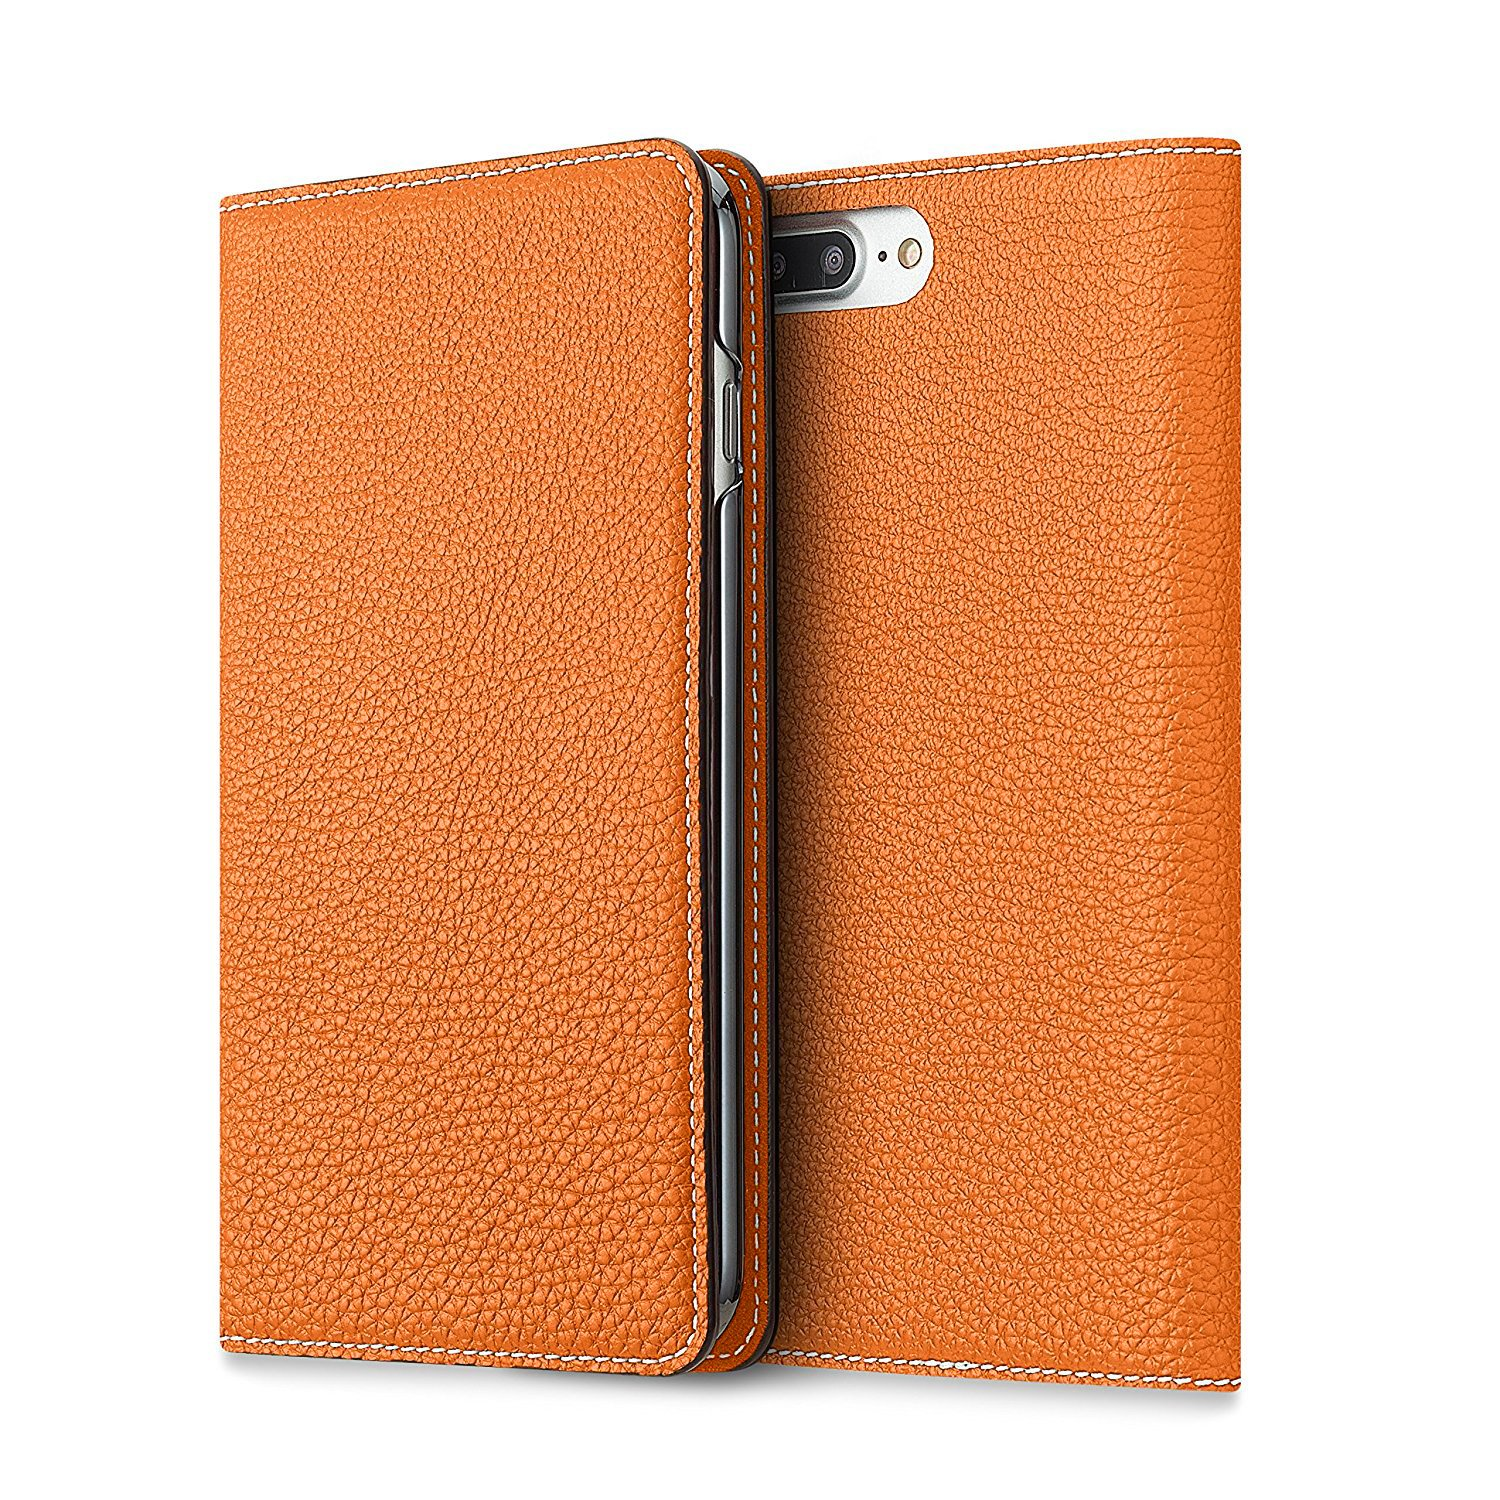 [WINTER SALE 30%OFF] BONAVENTURA iPhone 7 Plus / 8 Plus Leather Flip Wallet Case (Full-Grain Perlinger Leather from Germany) [iPhone 7 Plus / 8 Plus | ORANGE]